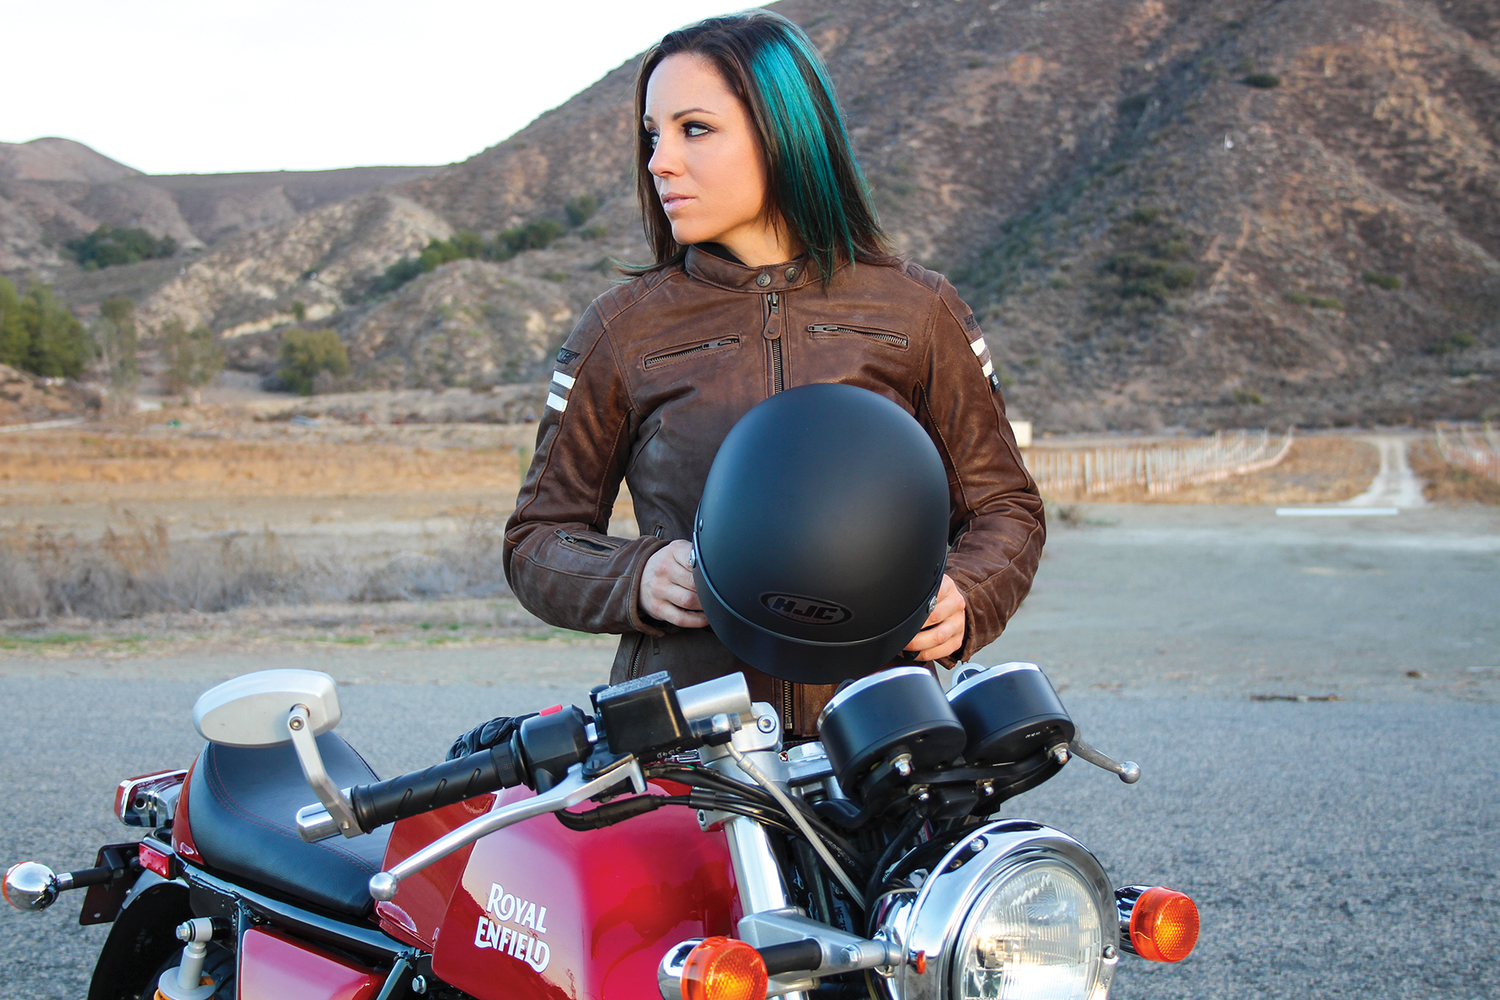 The Ladies 92 Jacket - Come see it on store.